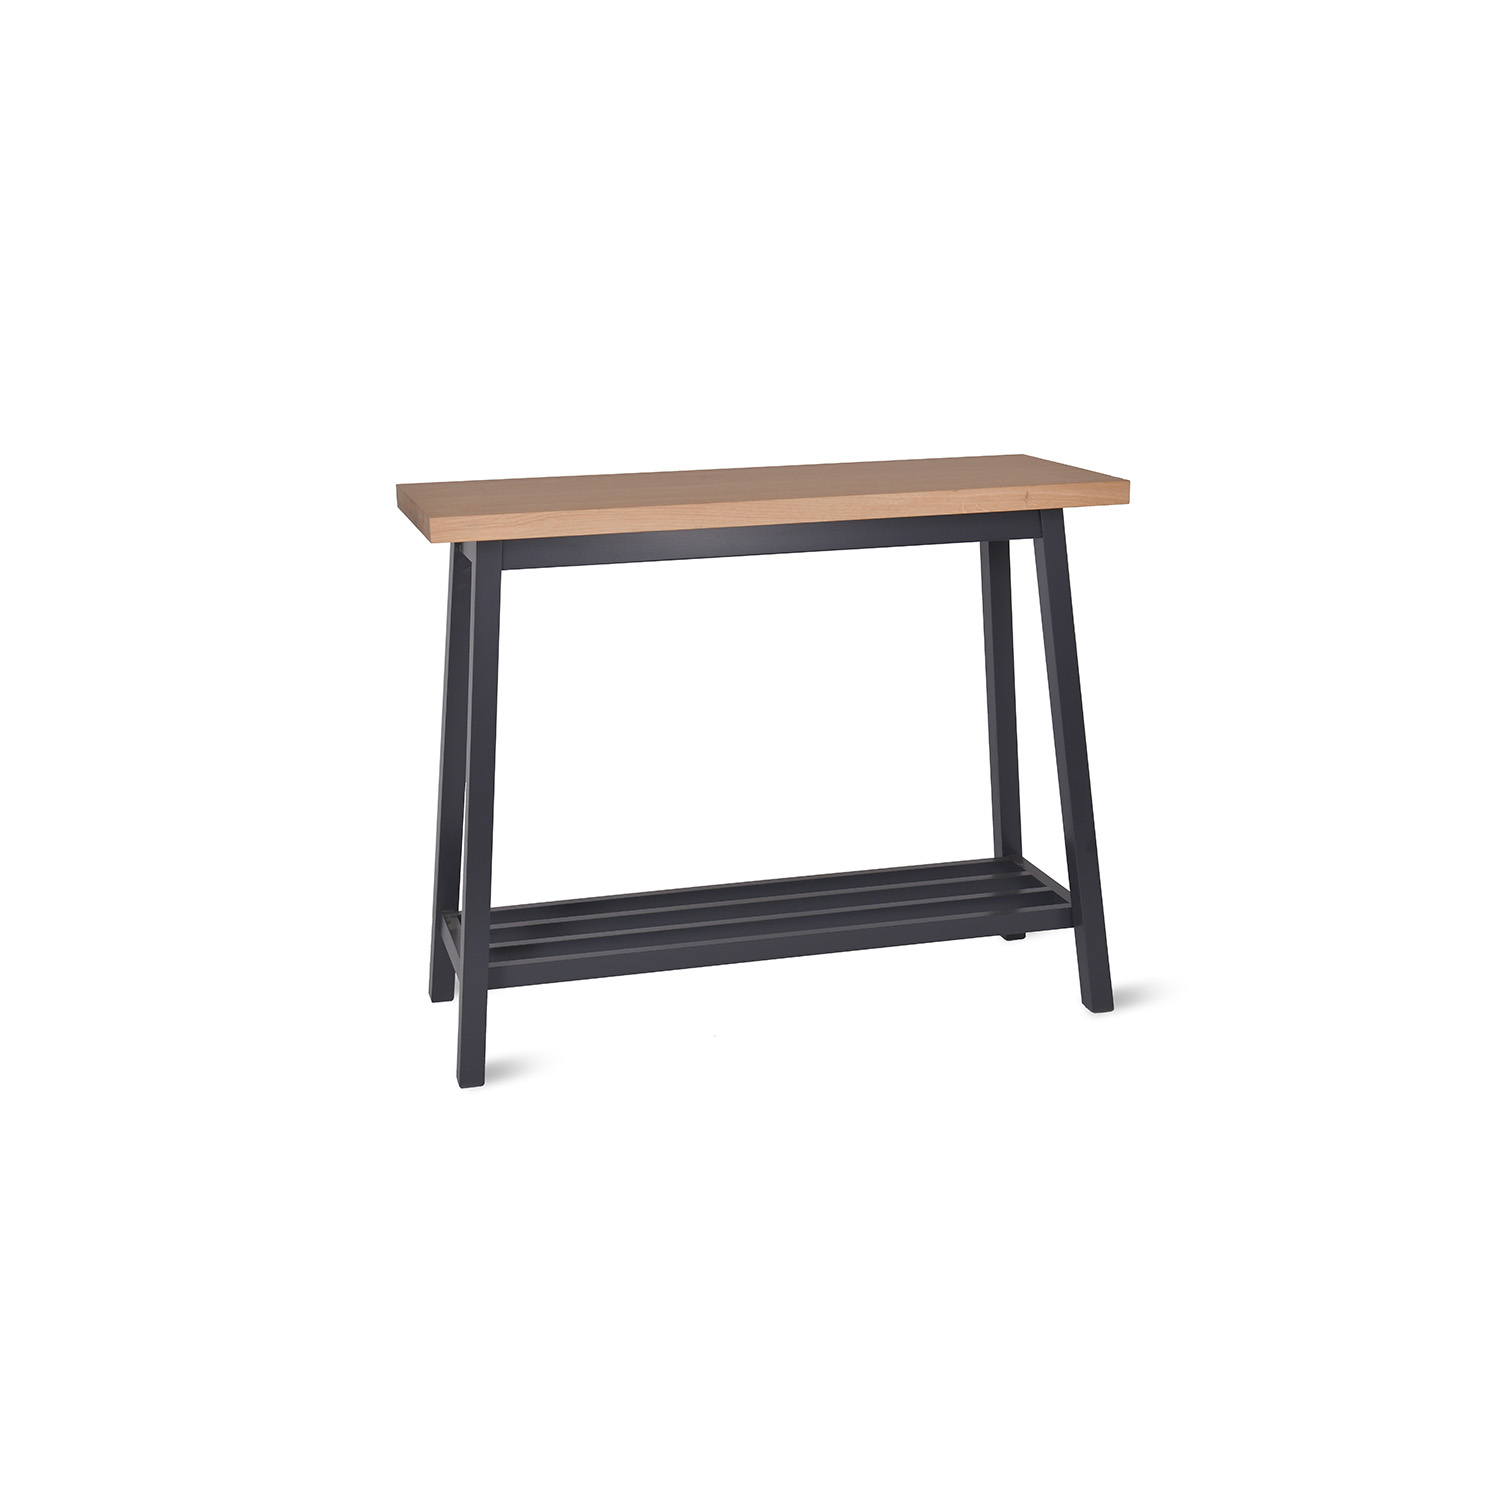 Image of Garden Trading Clockhouse Console Table, Carbon